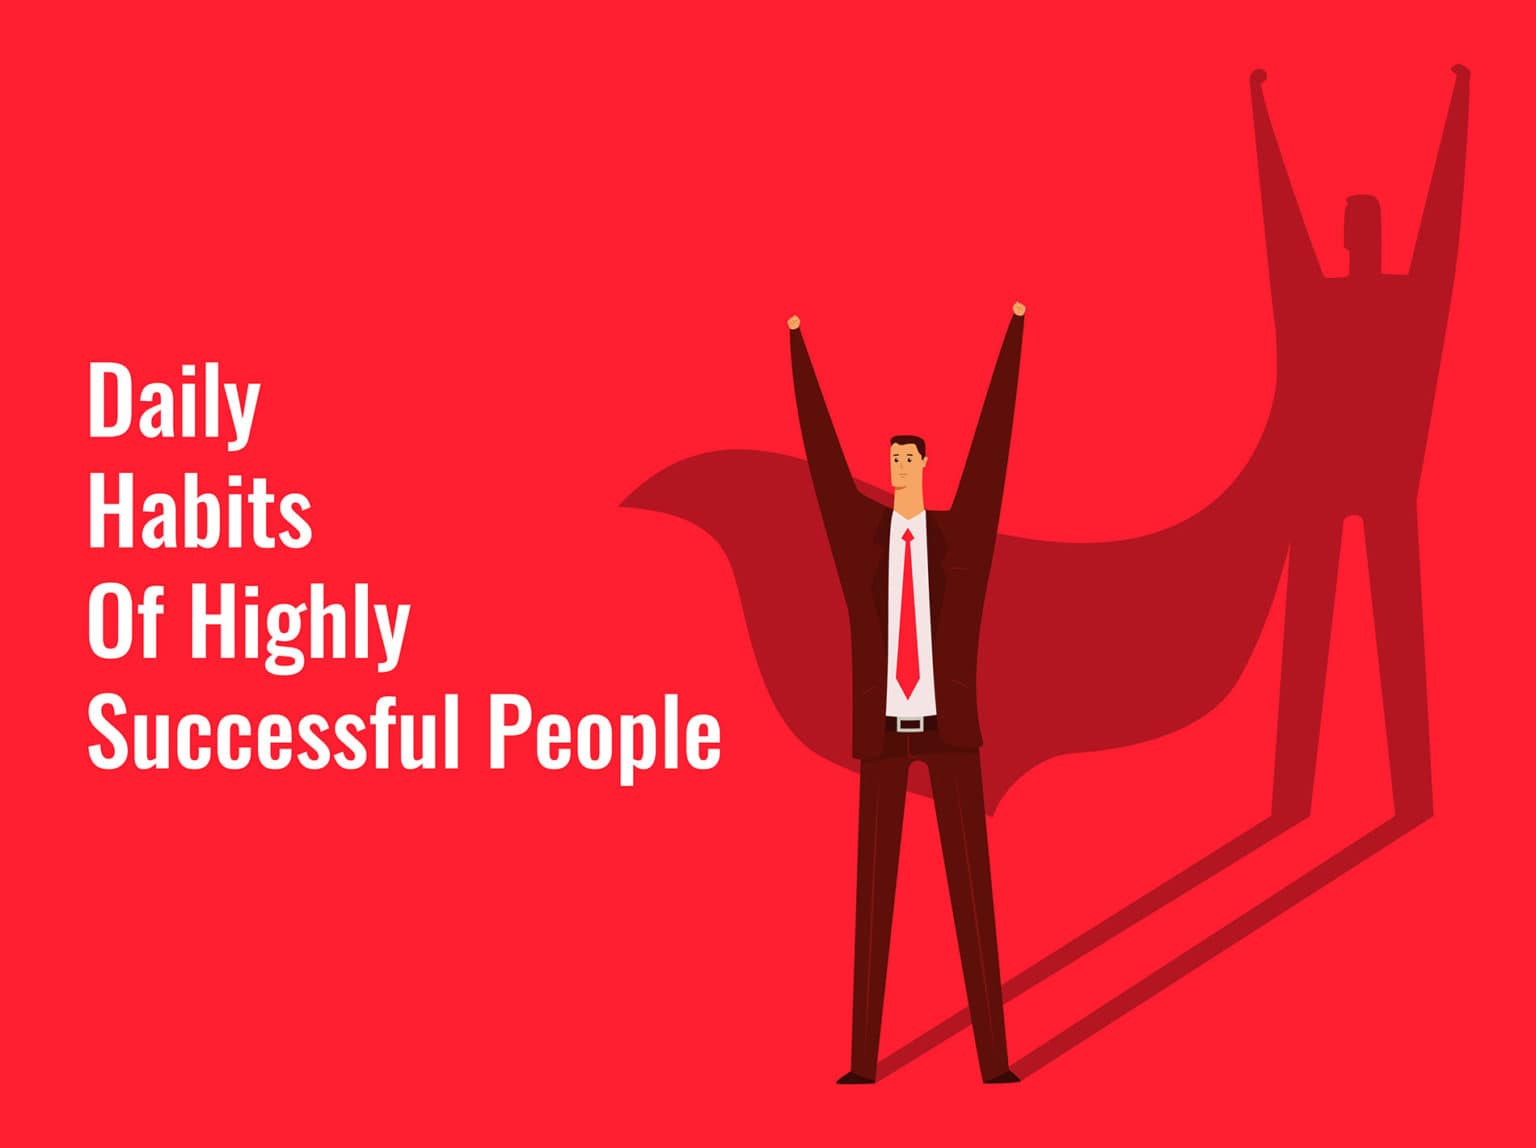 Successful people daily habits